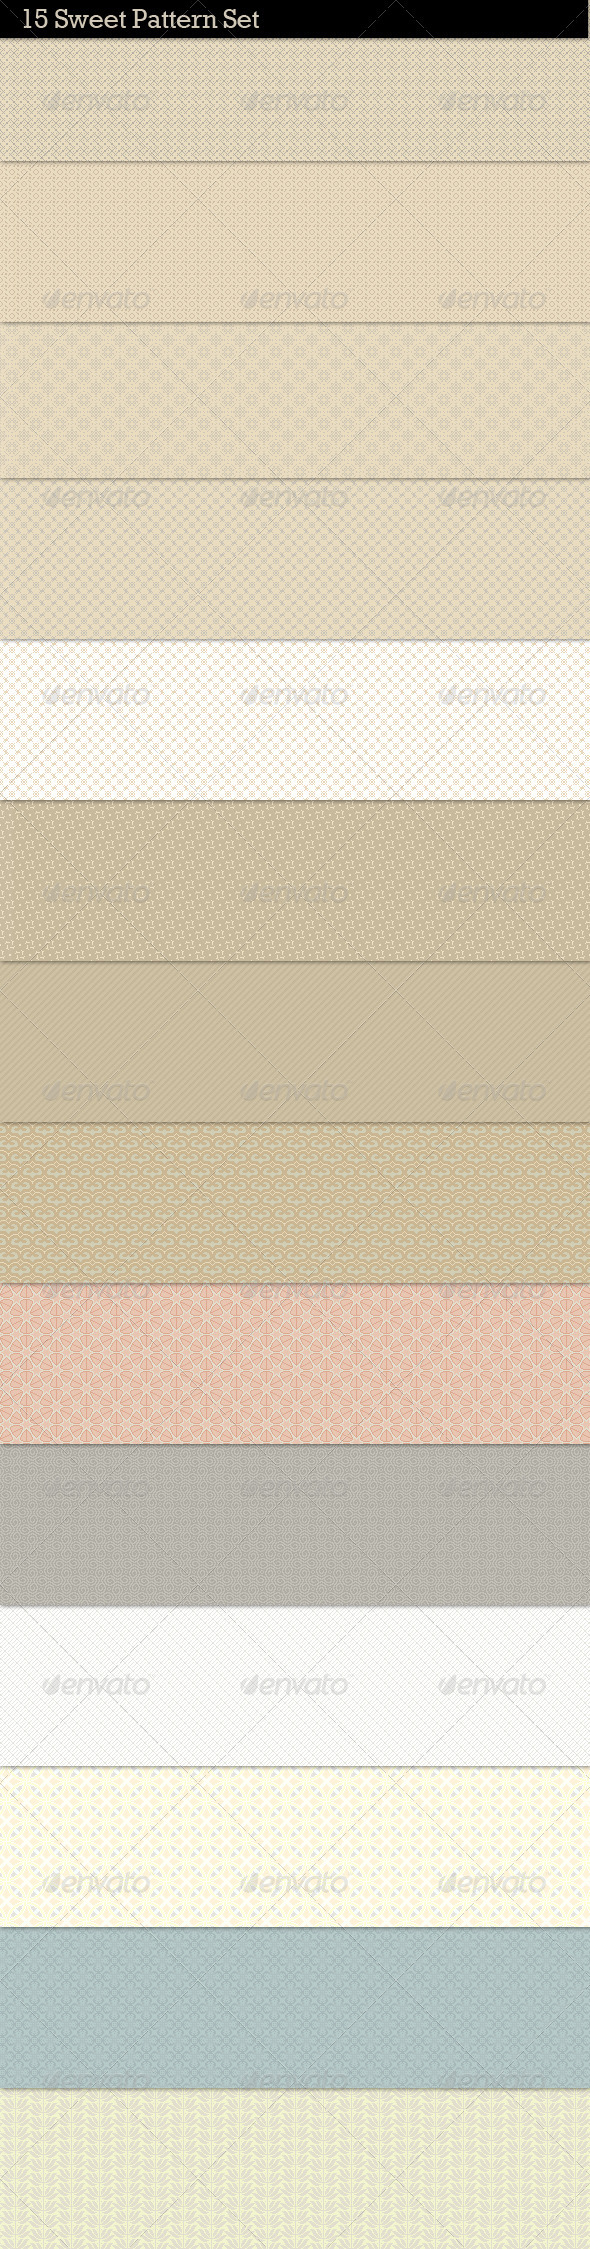 15 Clean Sweet Web Patterns - Patterns Decorative